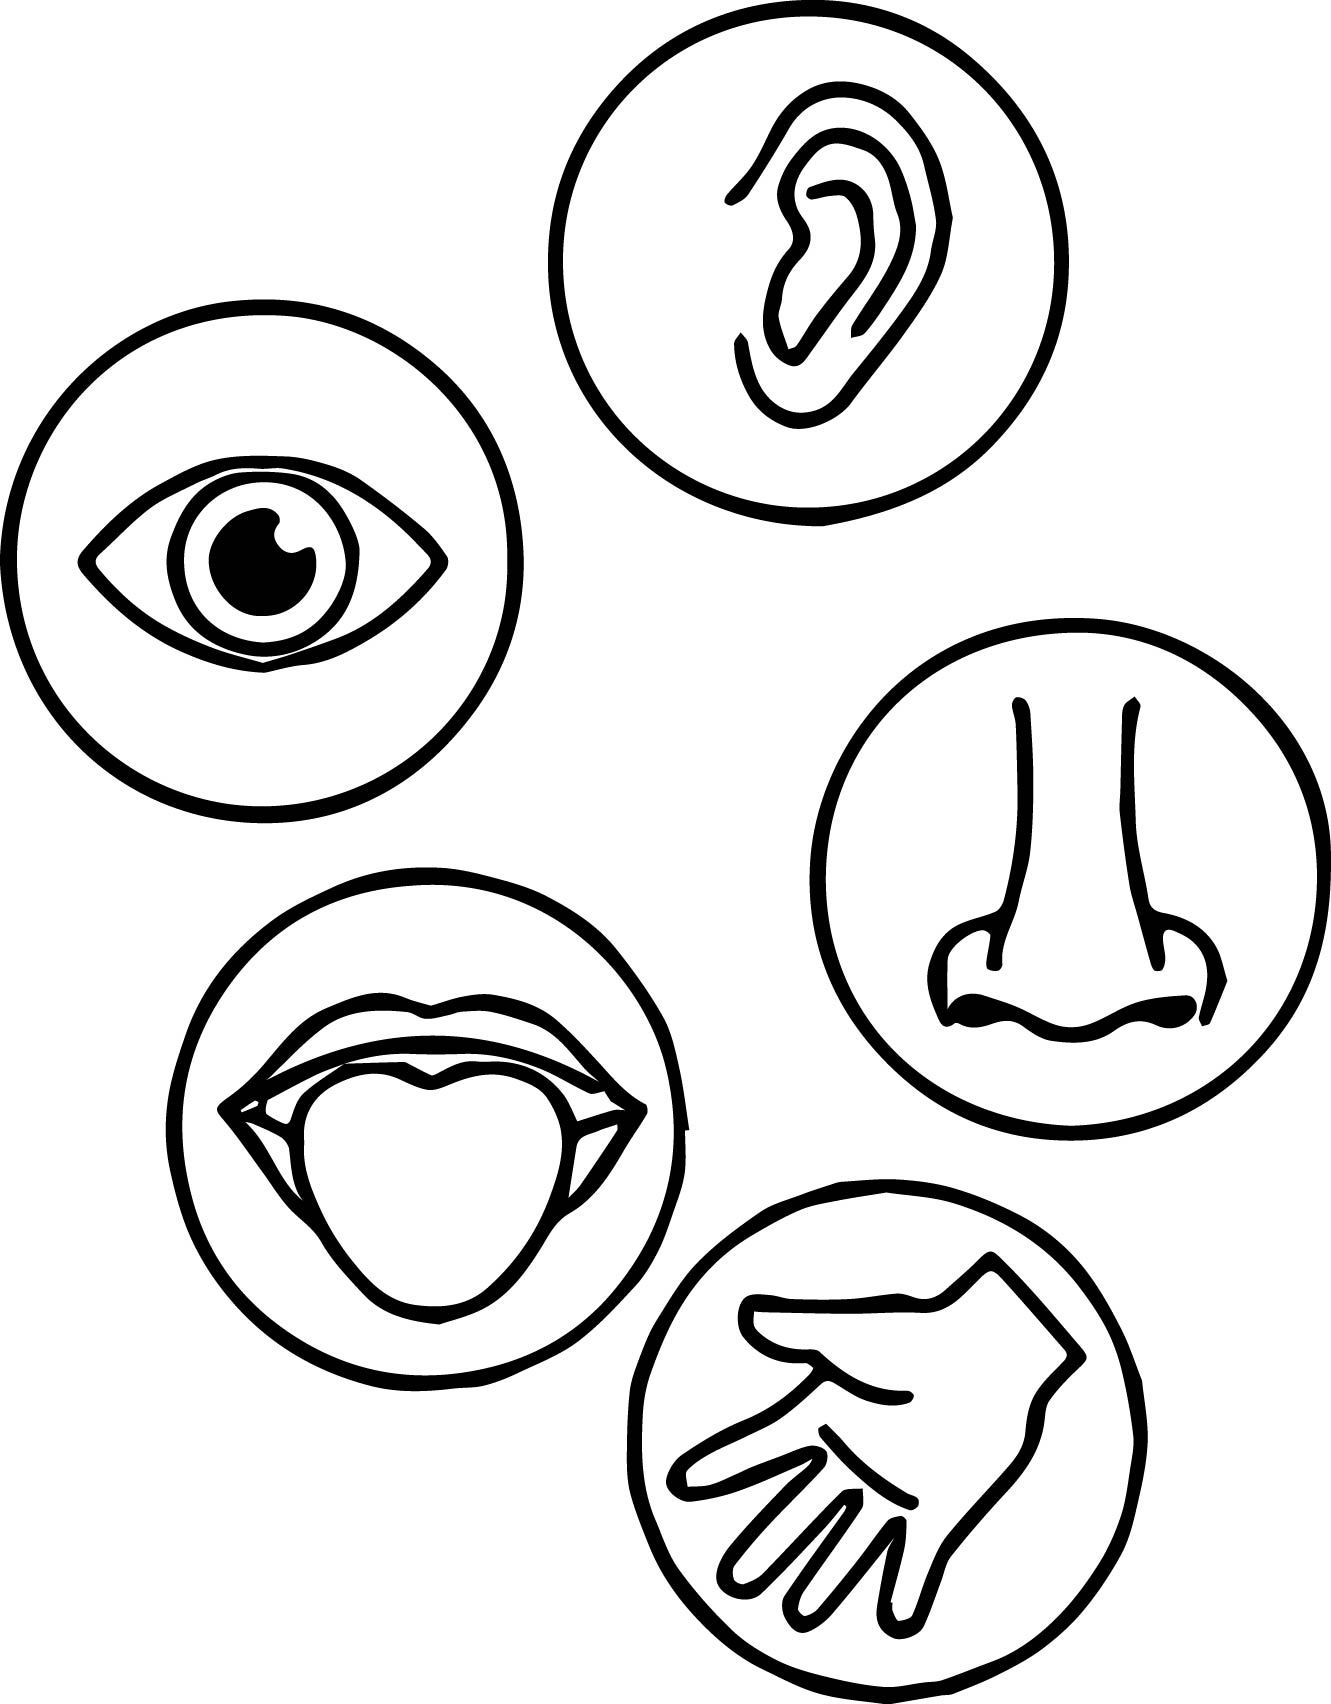 printable 5 senses coloring pages 5 senses coloring pages free download on clipartmag coloring printable 5 pages senses